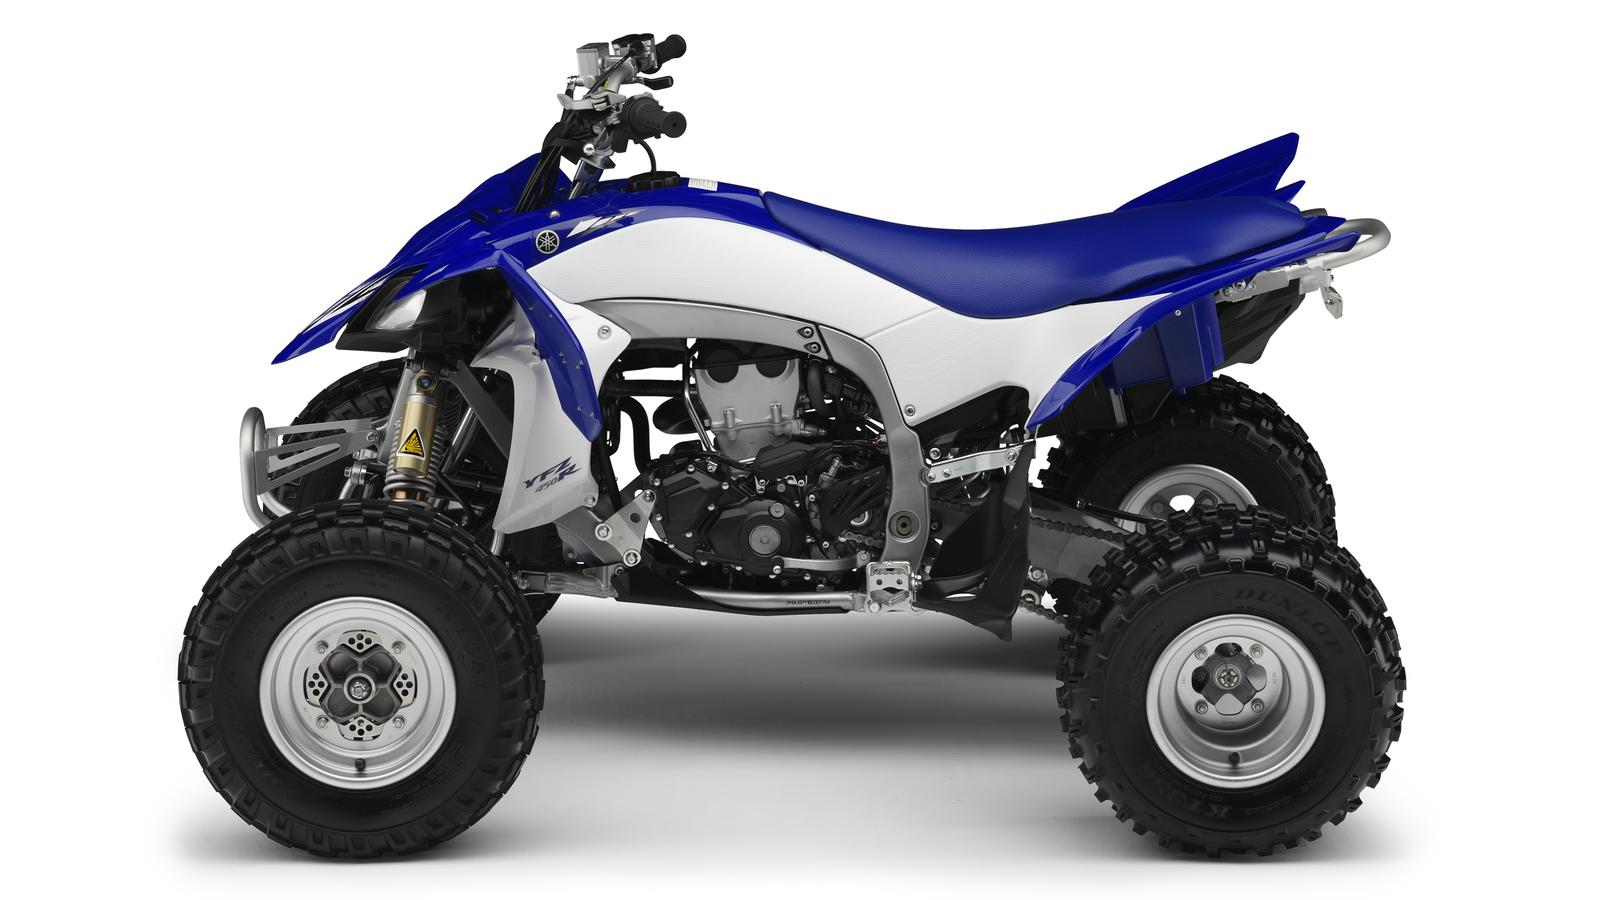 YAMAHA YFZ 450 R 2011 photo 7